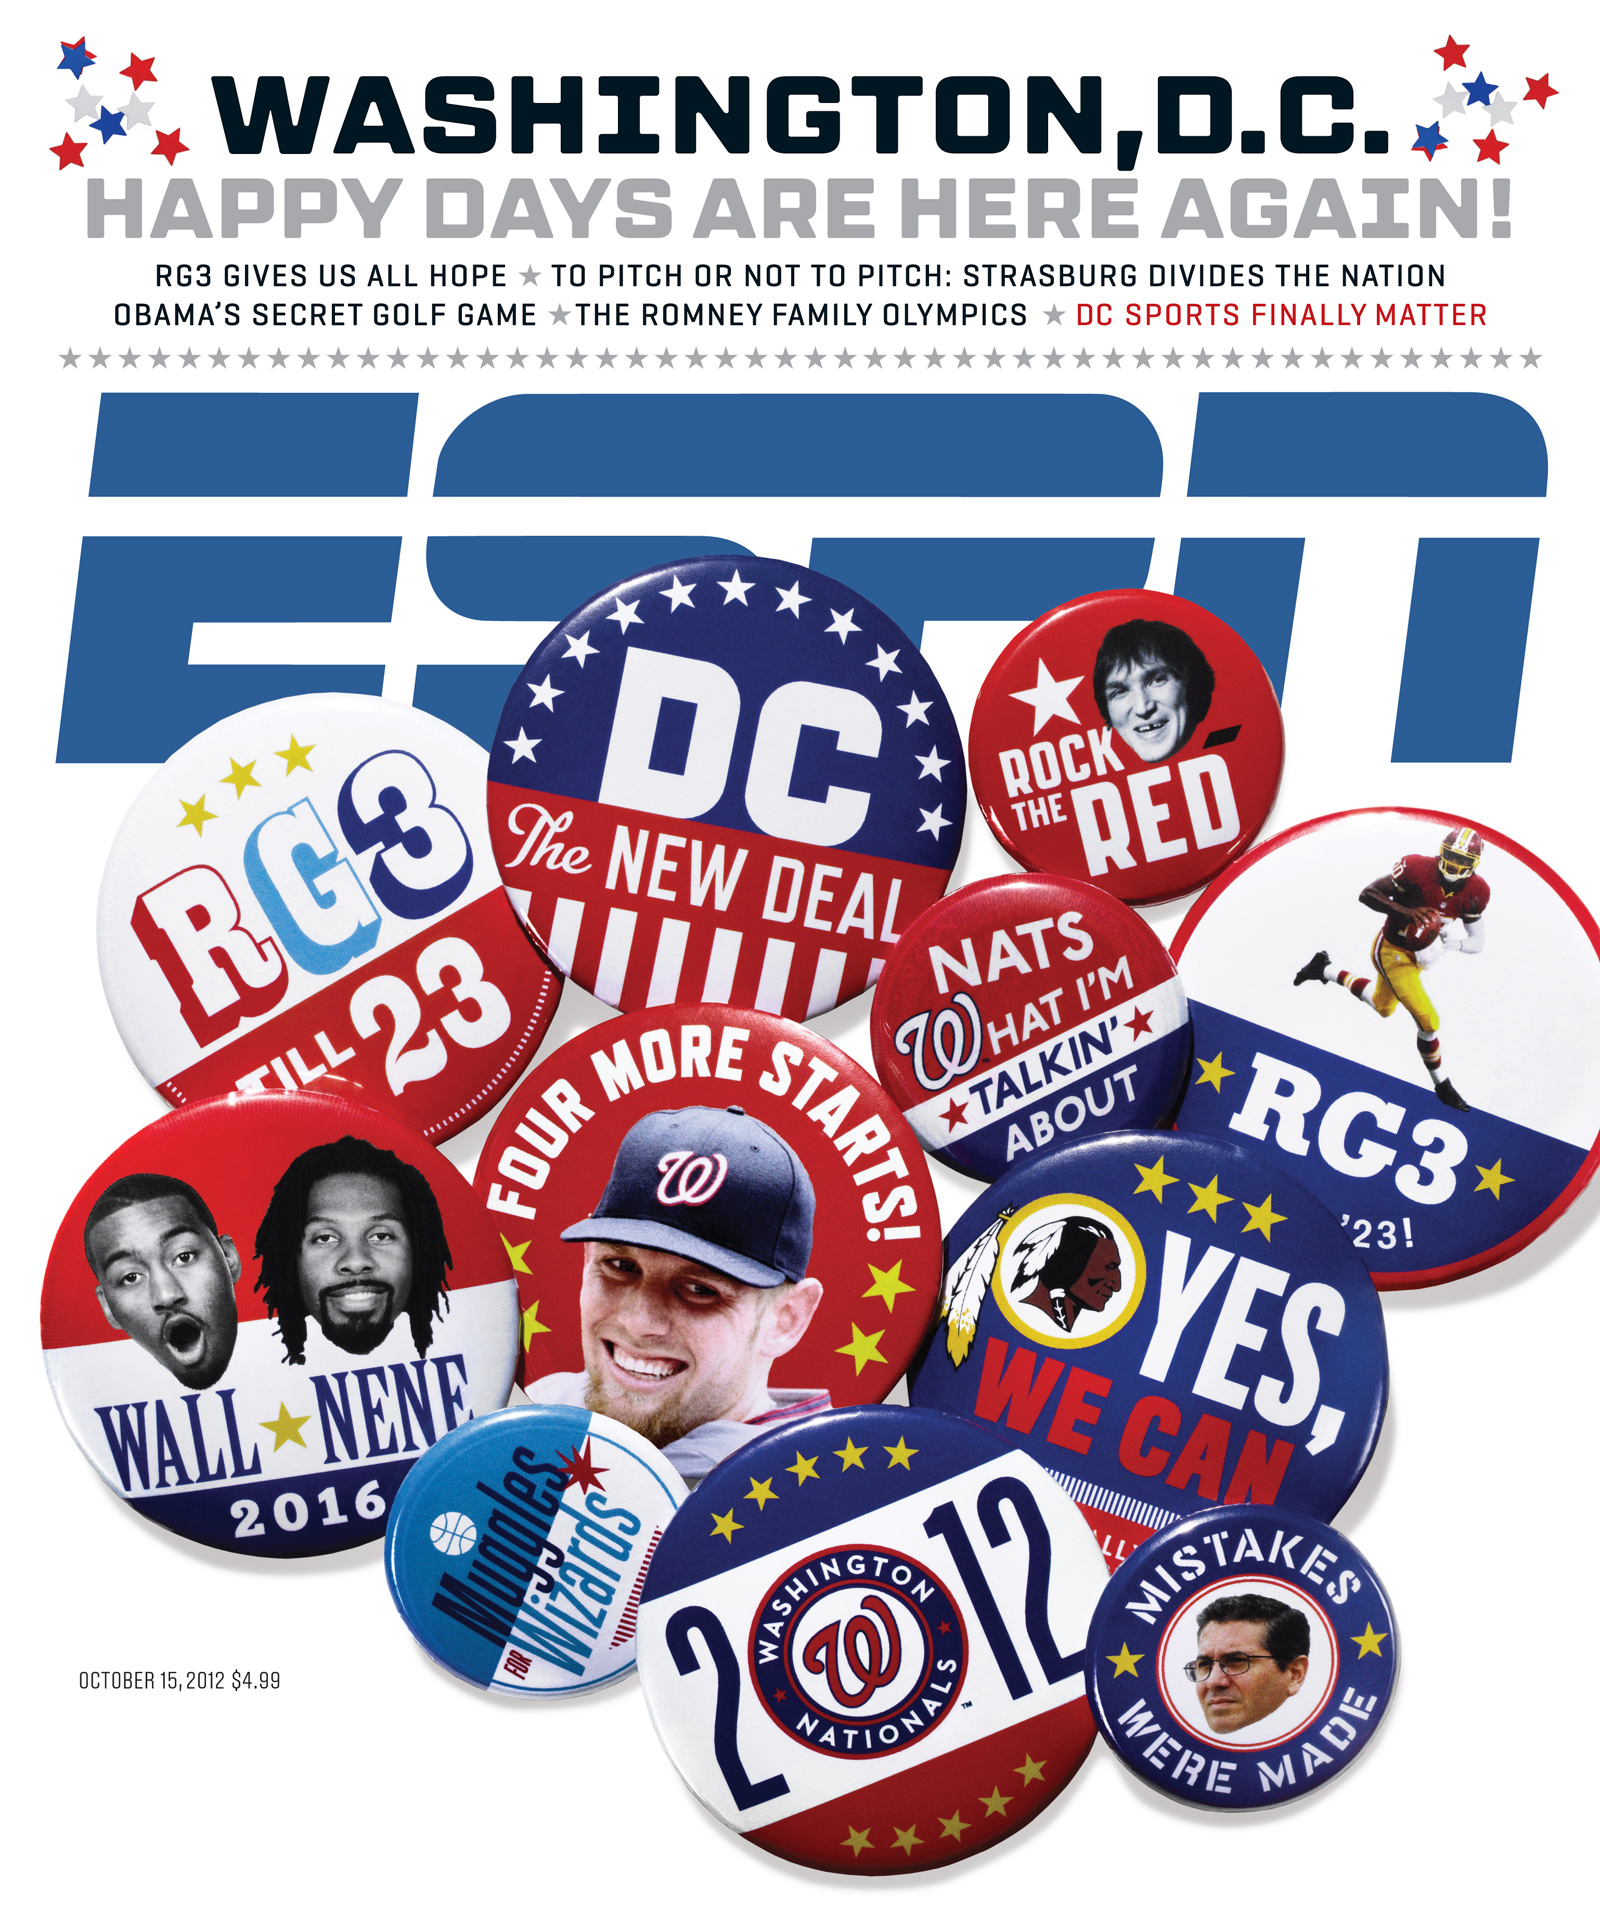 ESPN The Magazine's Washington, D.C. Issue